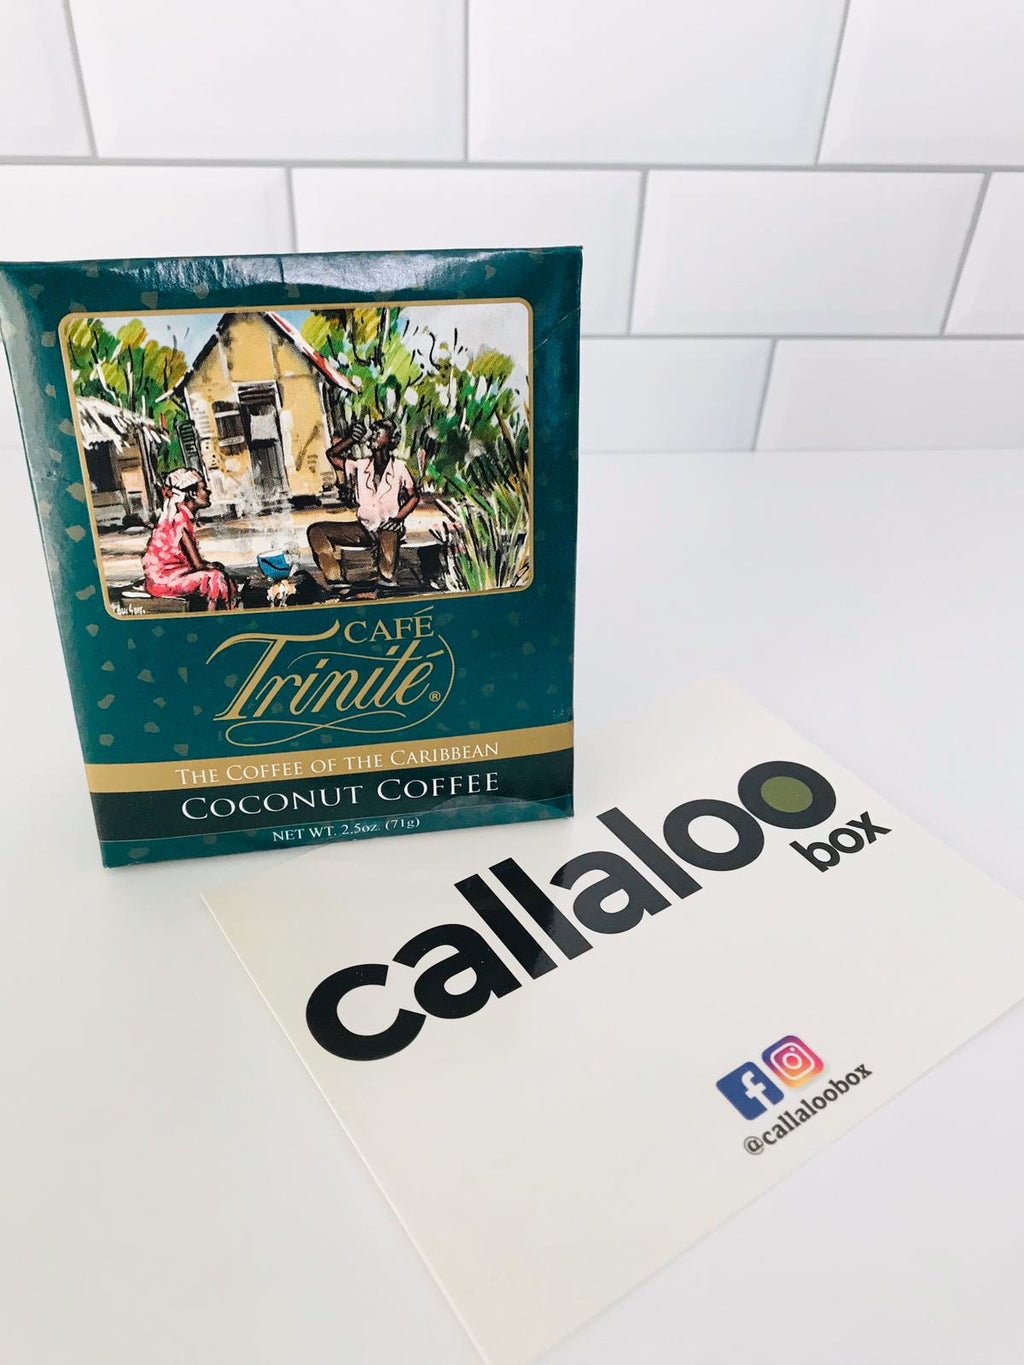 callaloo box trinidad and tobago subscription box caribbean online grocery cafe trinite coconut flavored coffee